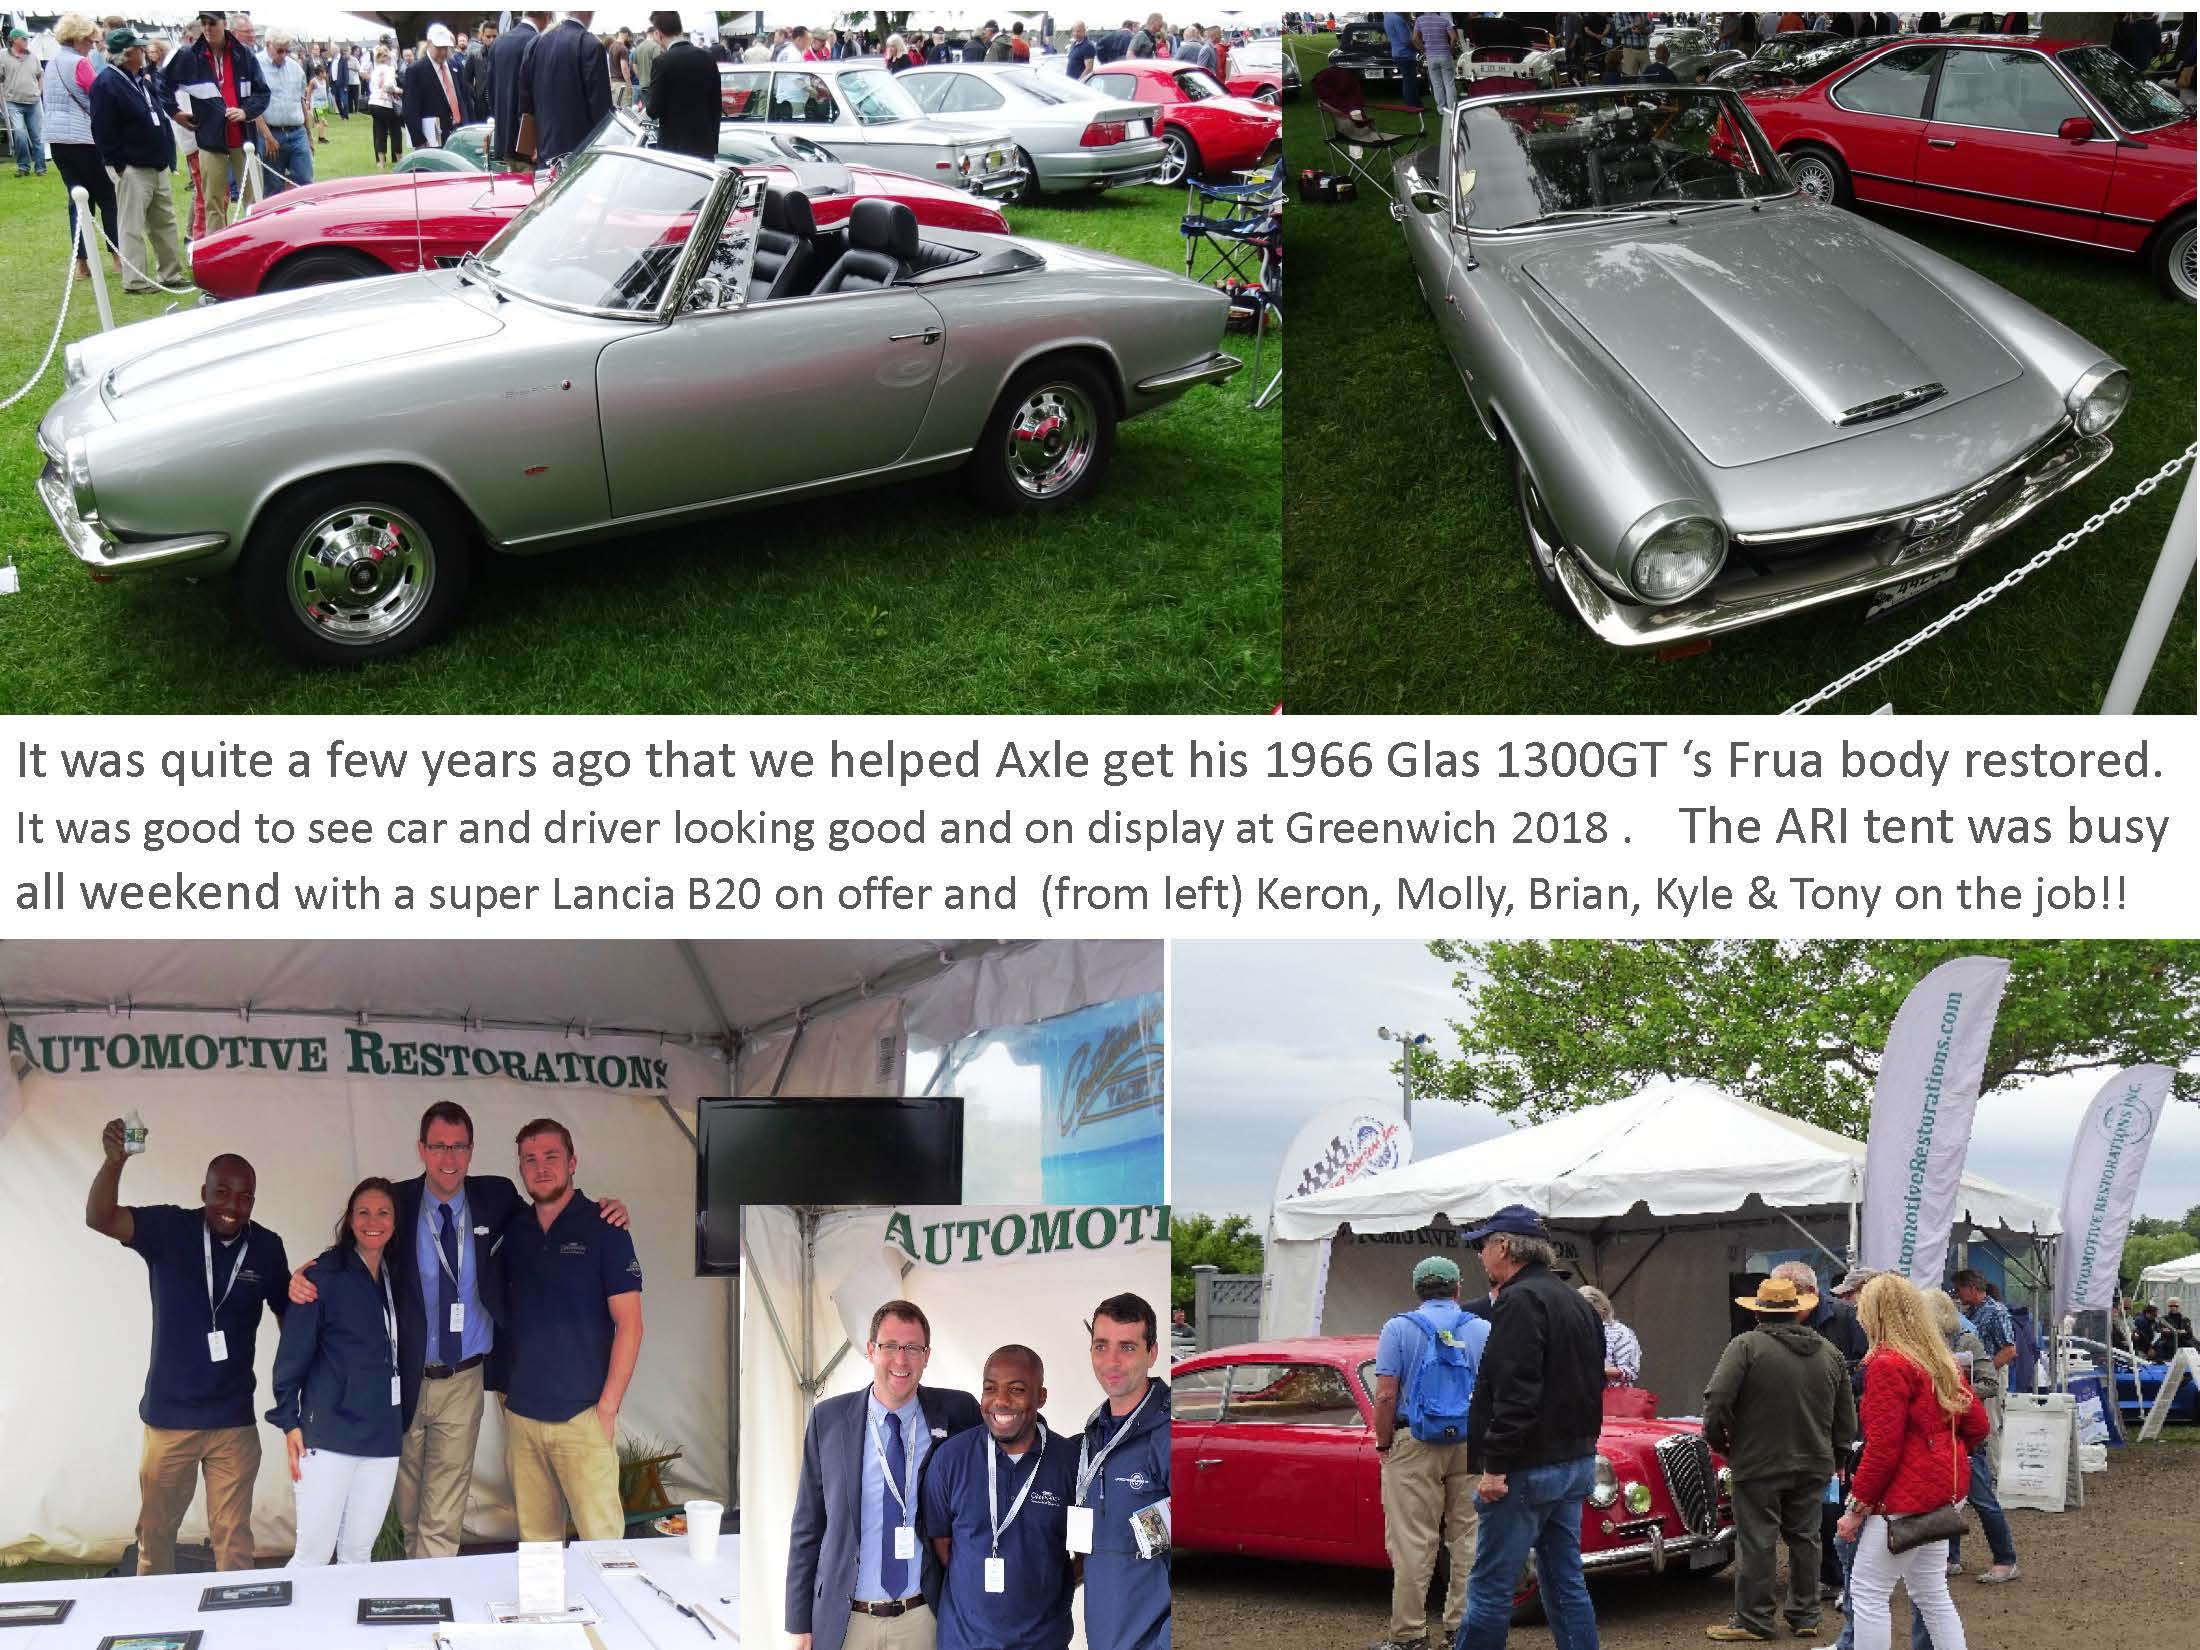 Greenwich Concours 2018_Page_6.jpg